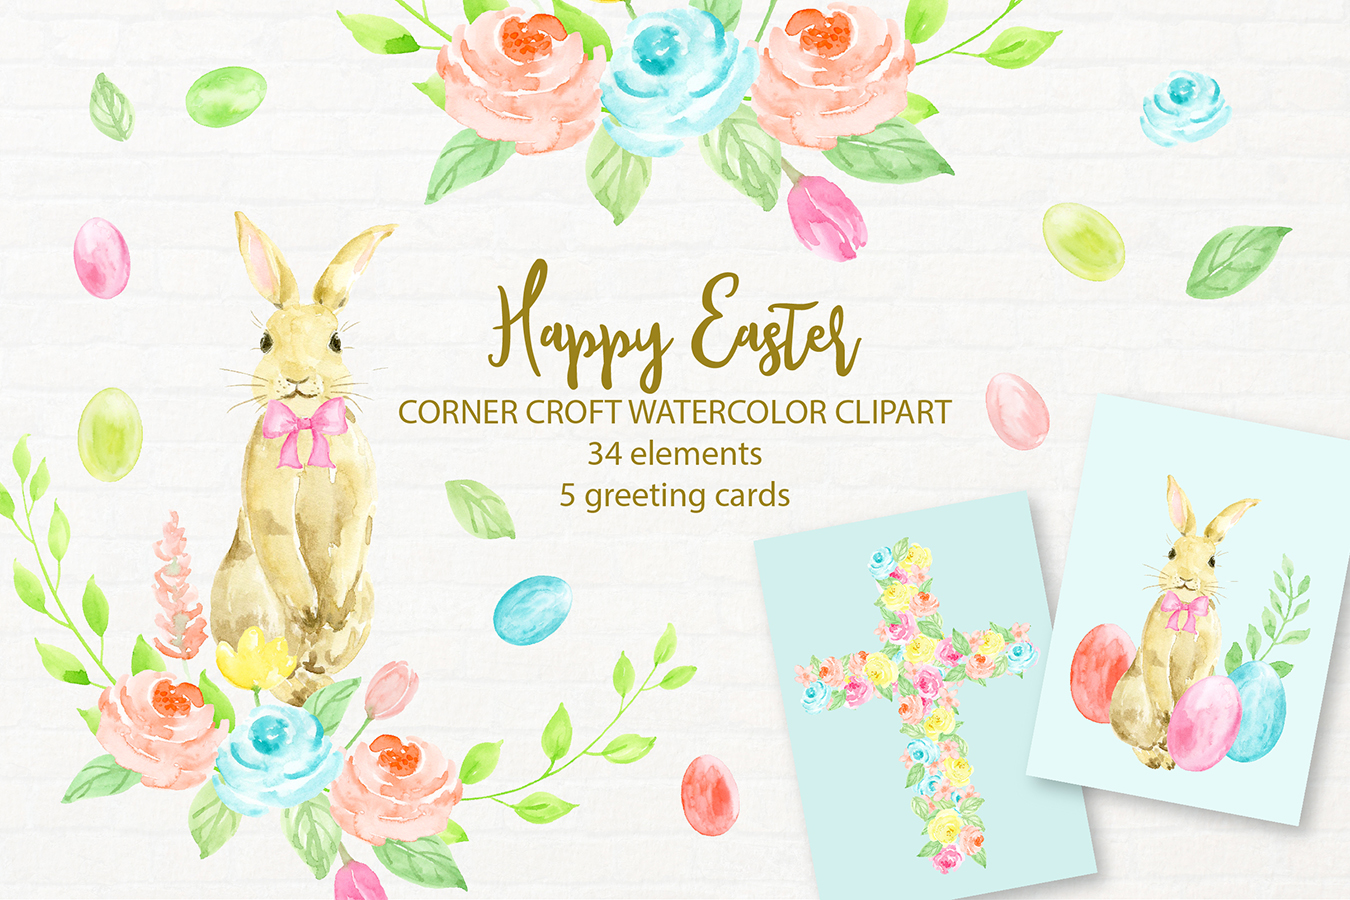 Watercolor Illustration Happy Easter example image 1